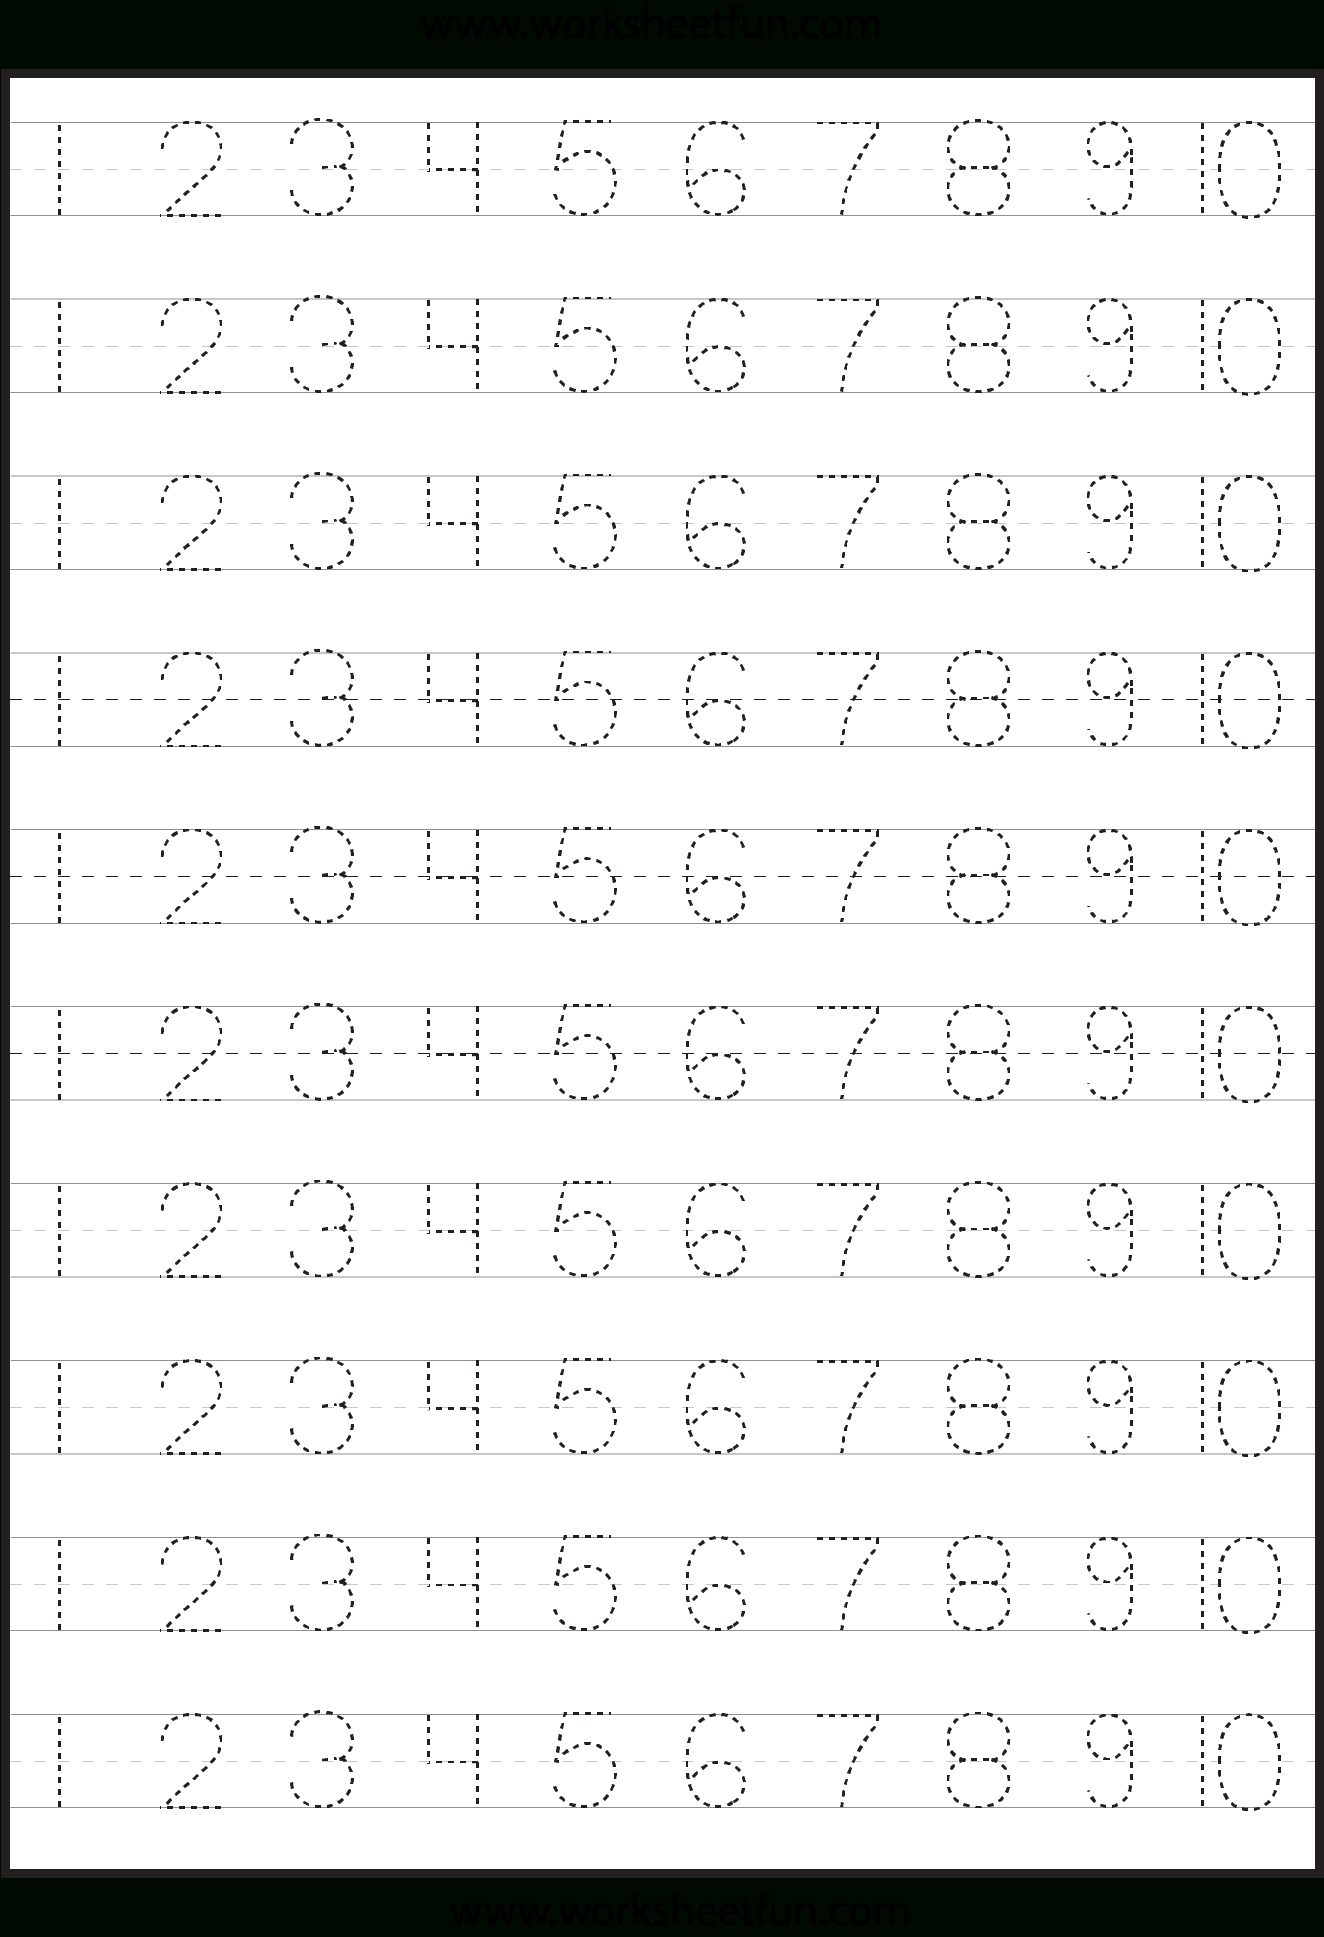 Number Tracing | Tracing Worksheets Preschool, Learning regarding Alphabet Tracing Worksheets For 2 Year Olds